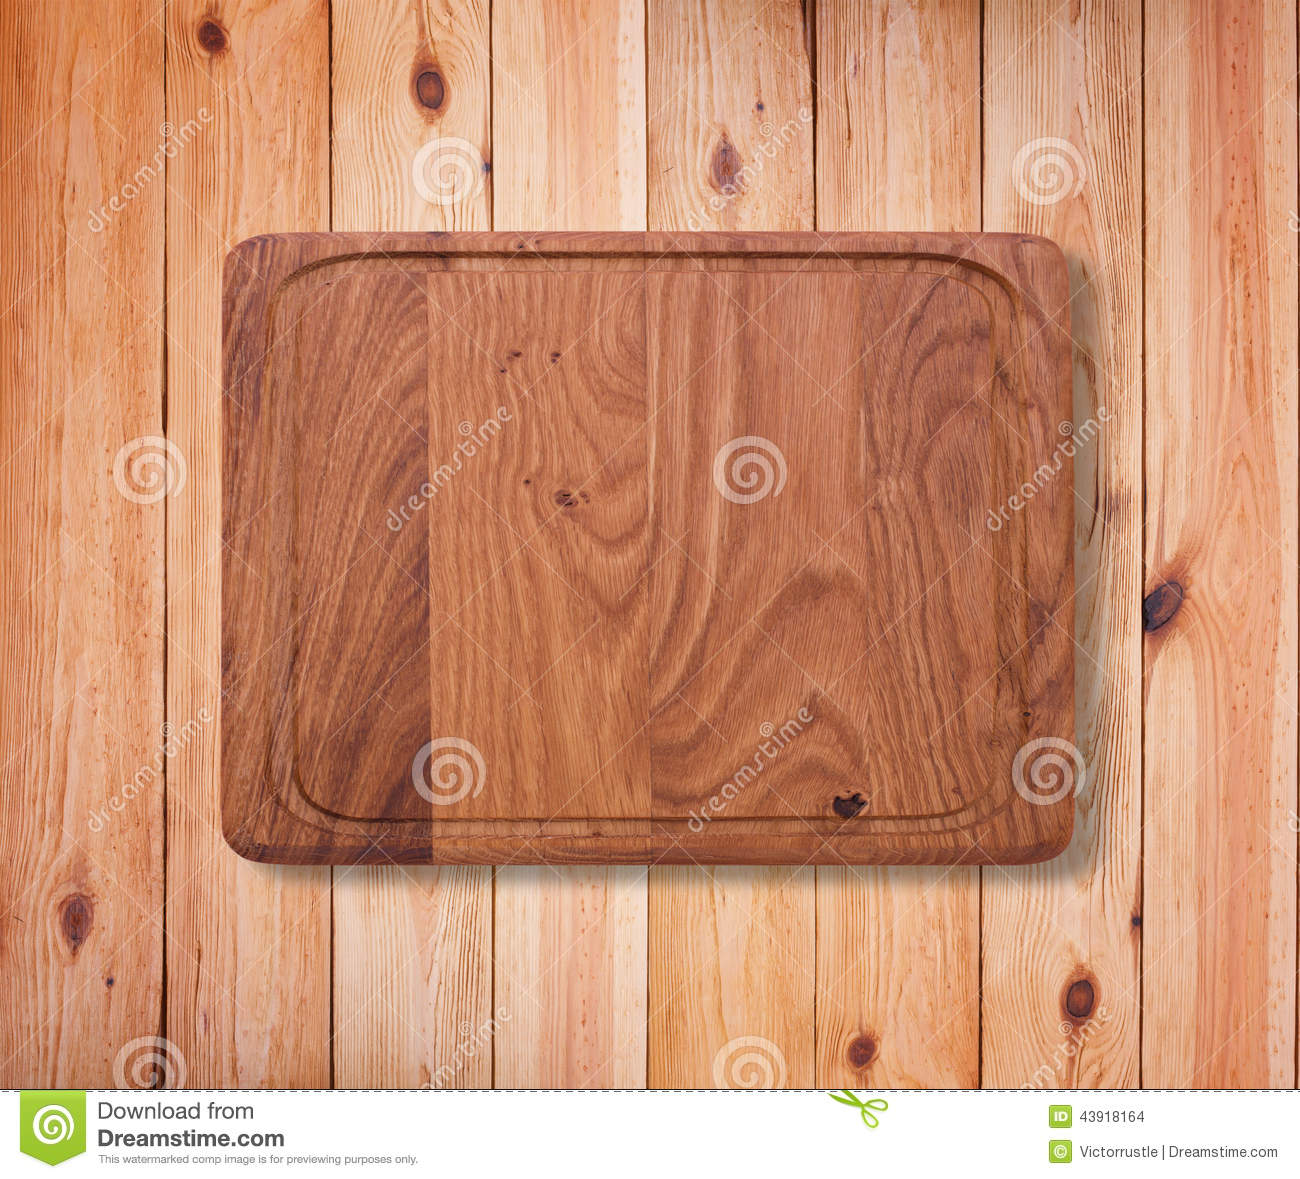 wood texture wooden kitchen cutting board close up empty table white  background product montage product page. kitchen table   Simplify Kitchen Cutting Table Rolling Kitchen